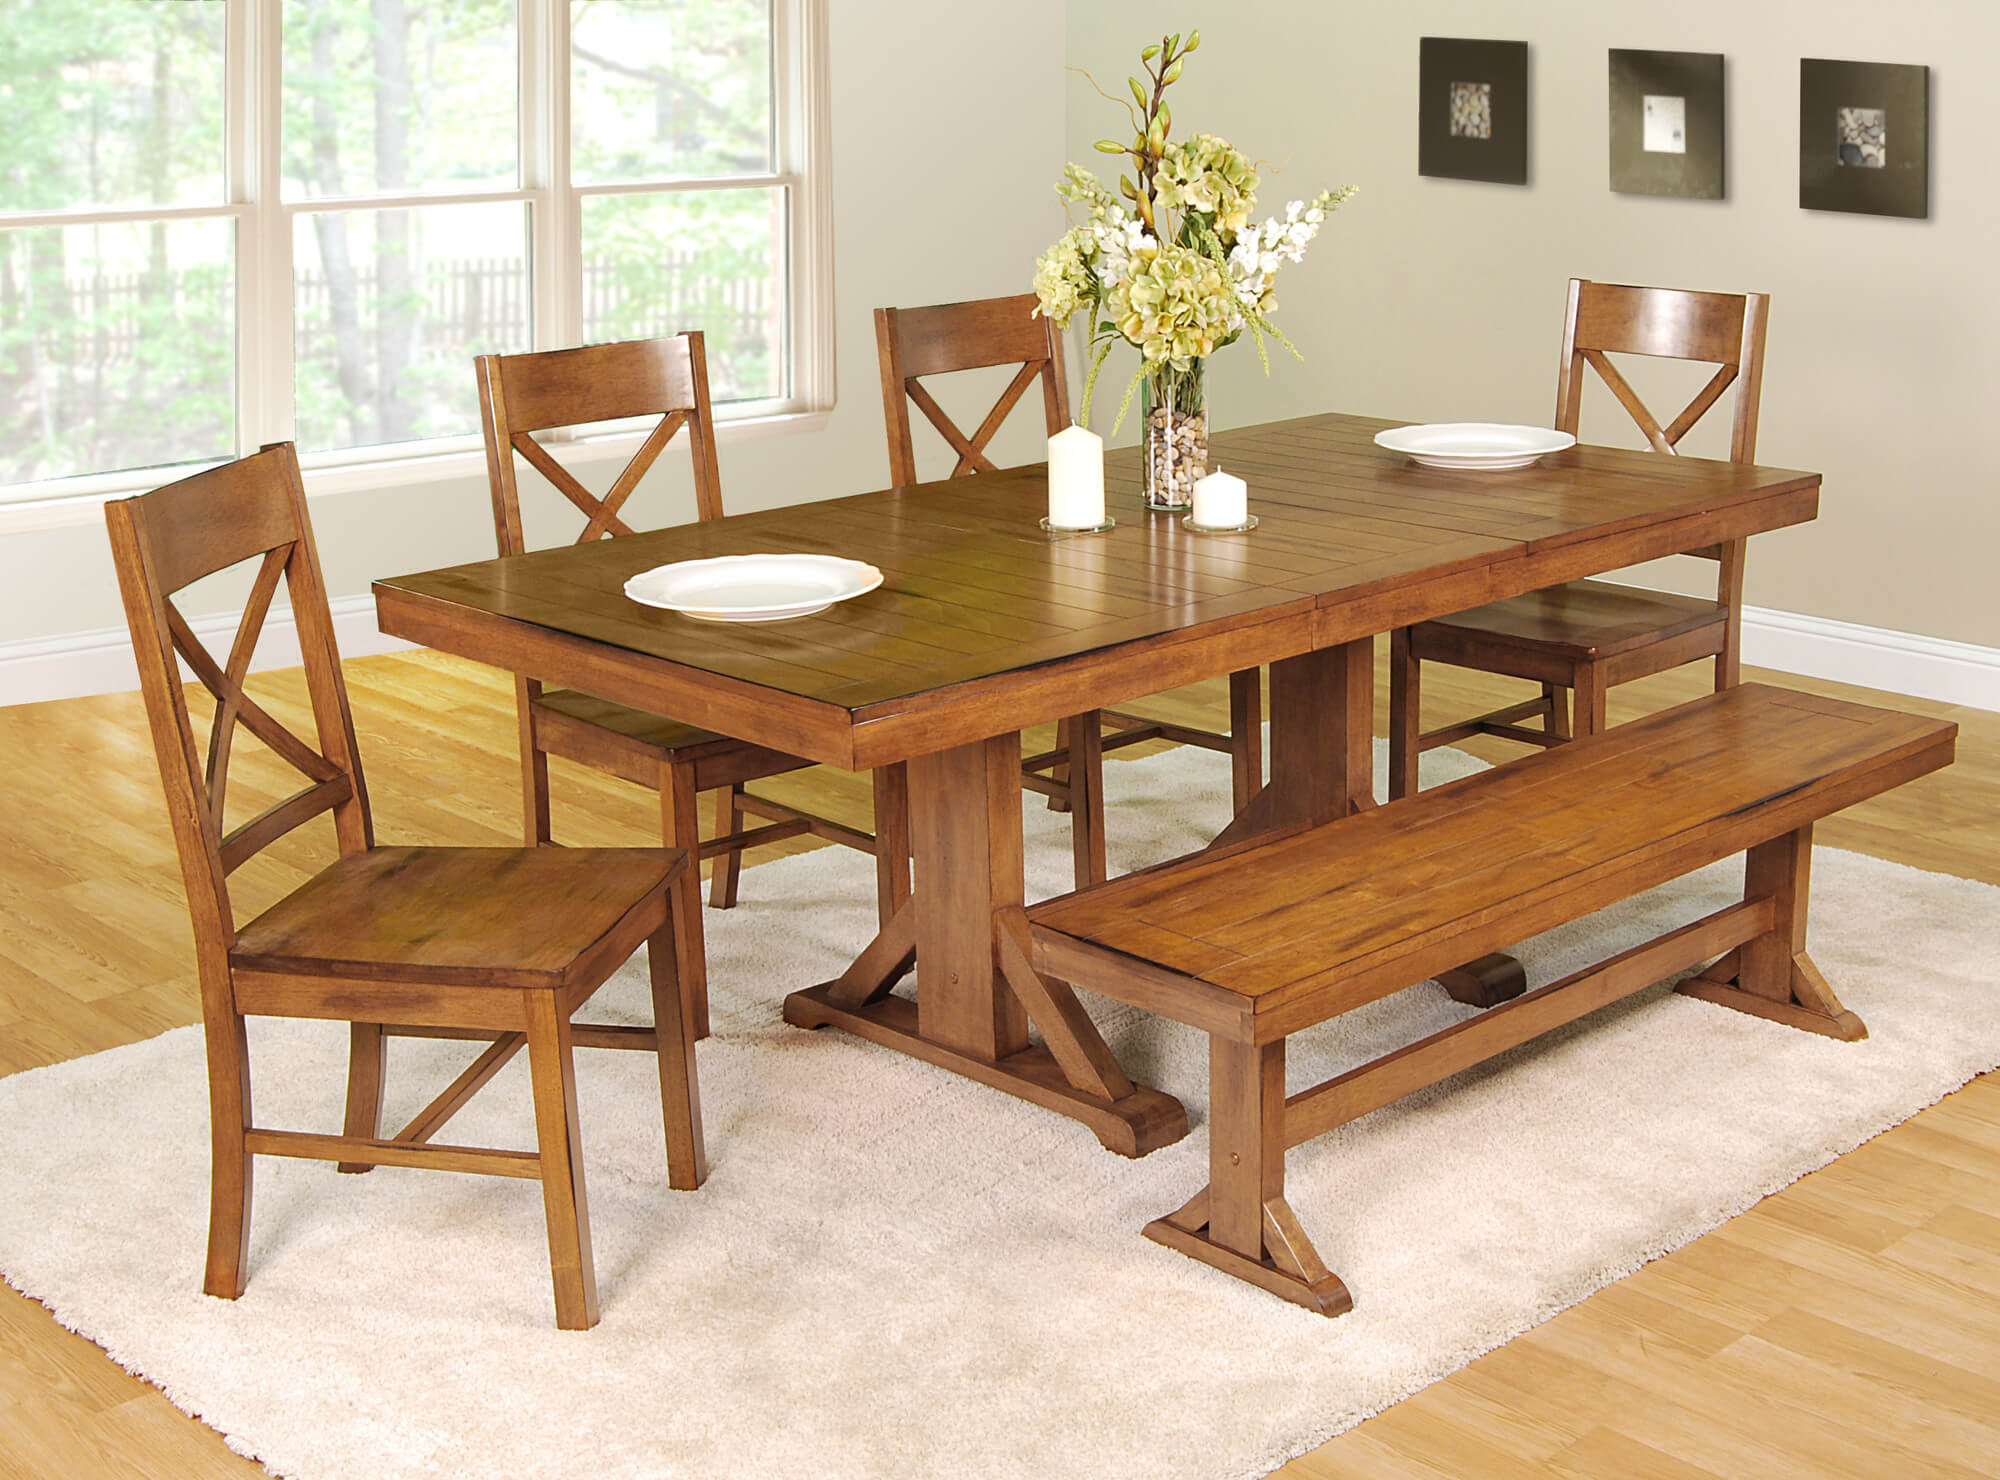 Antique wooden dining table - This Dining Room Set With Bench Is Going For The Antique Look With An